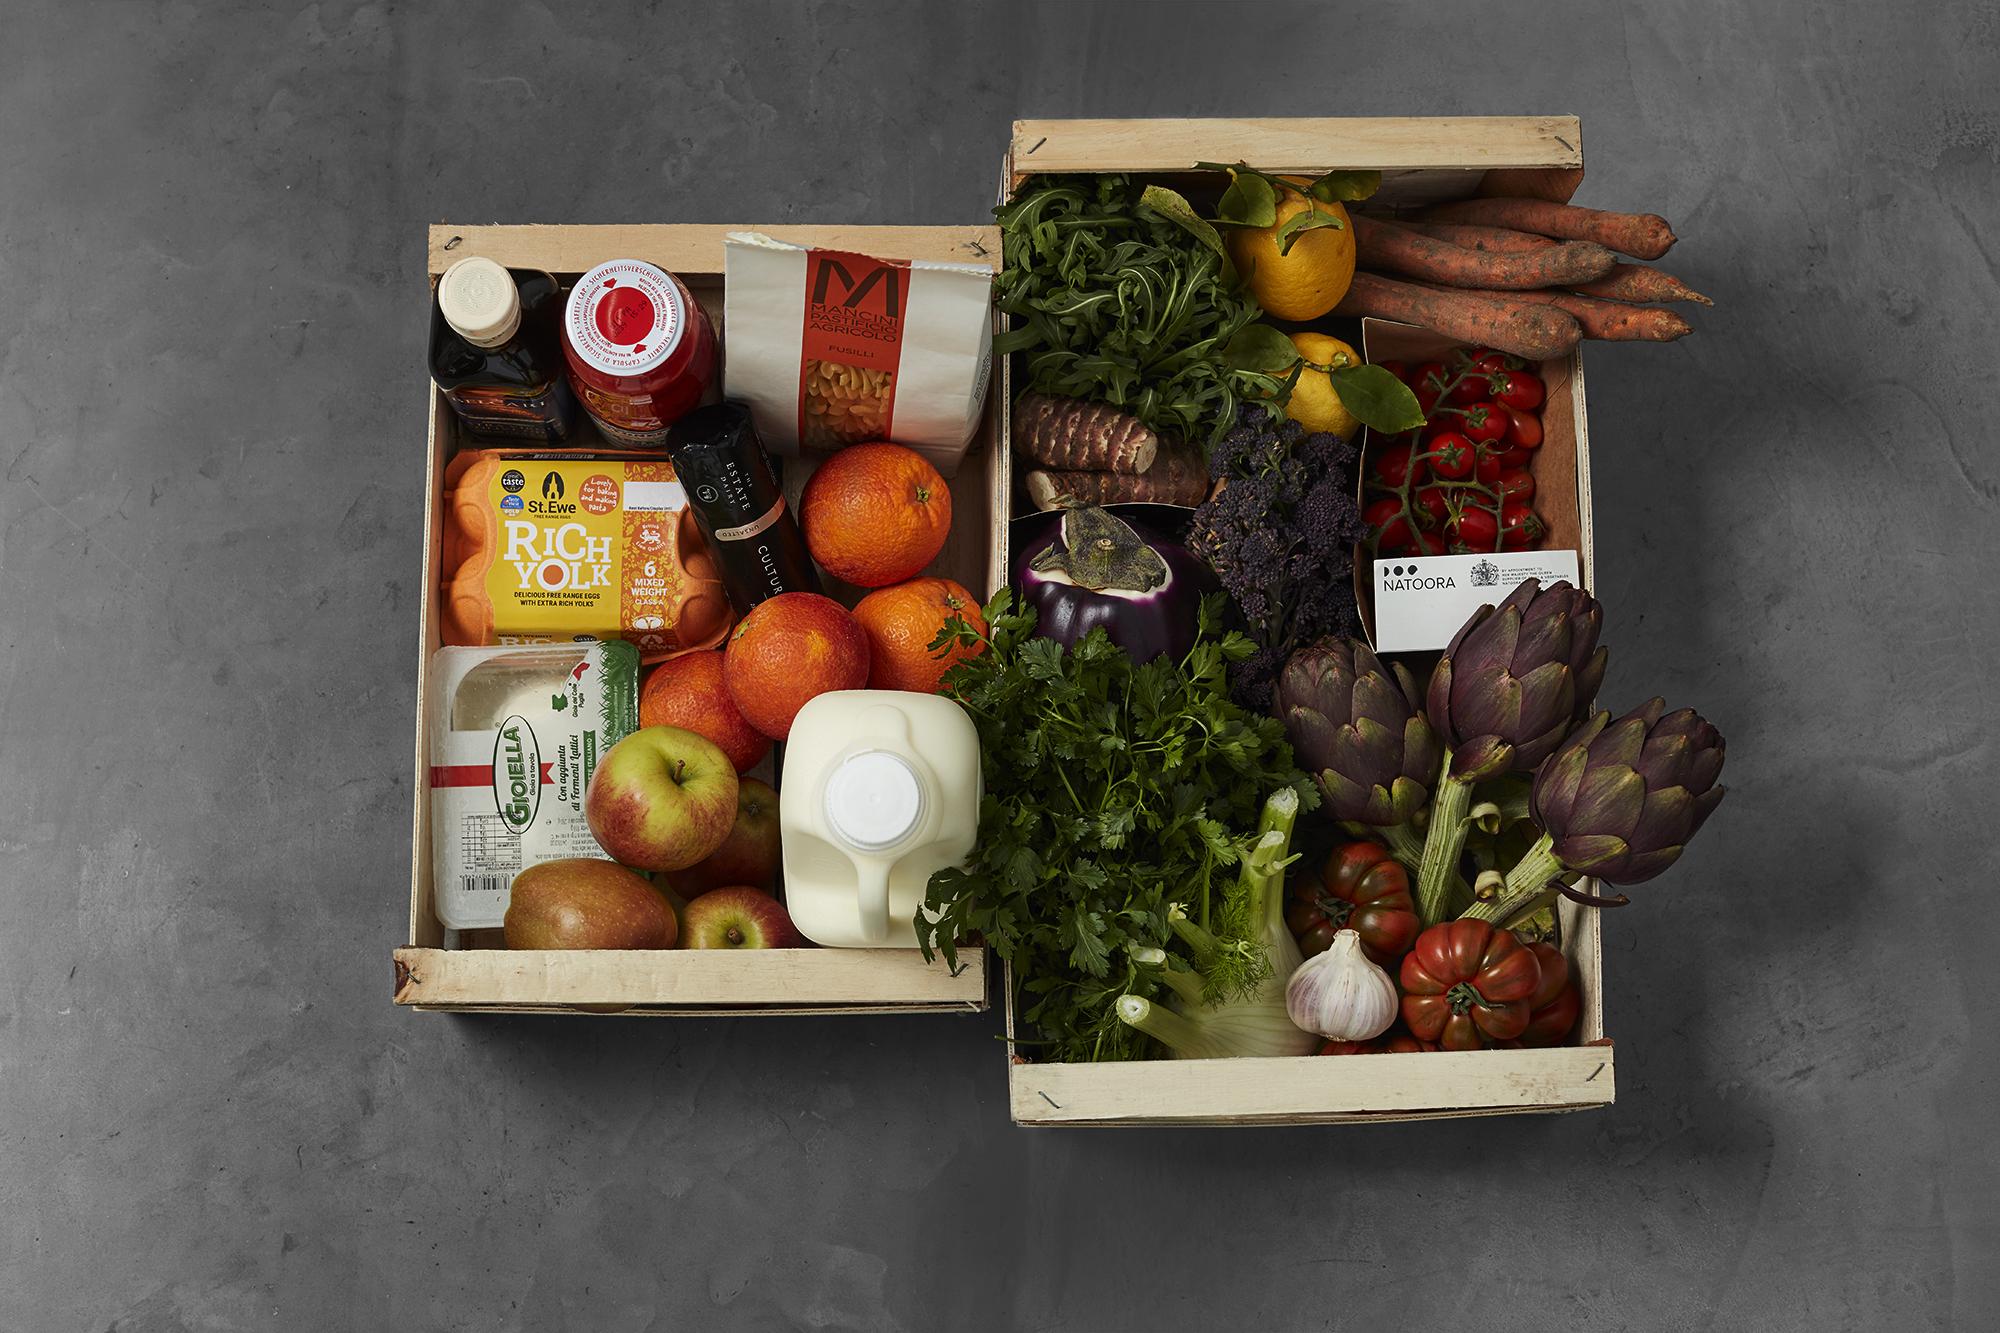 A box of fruit, vegetables, pasta, milk, and eggs